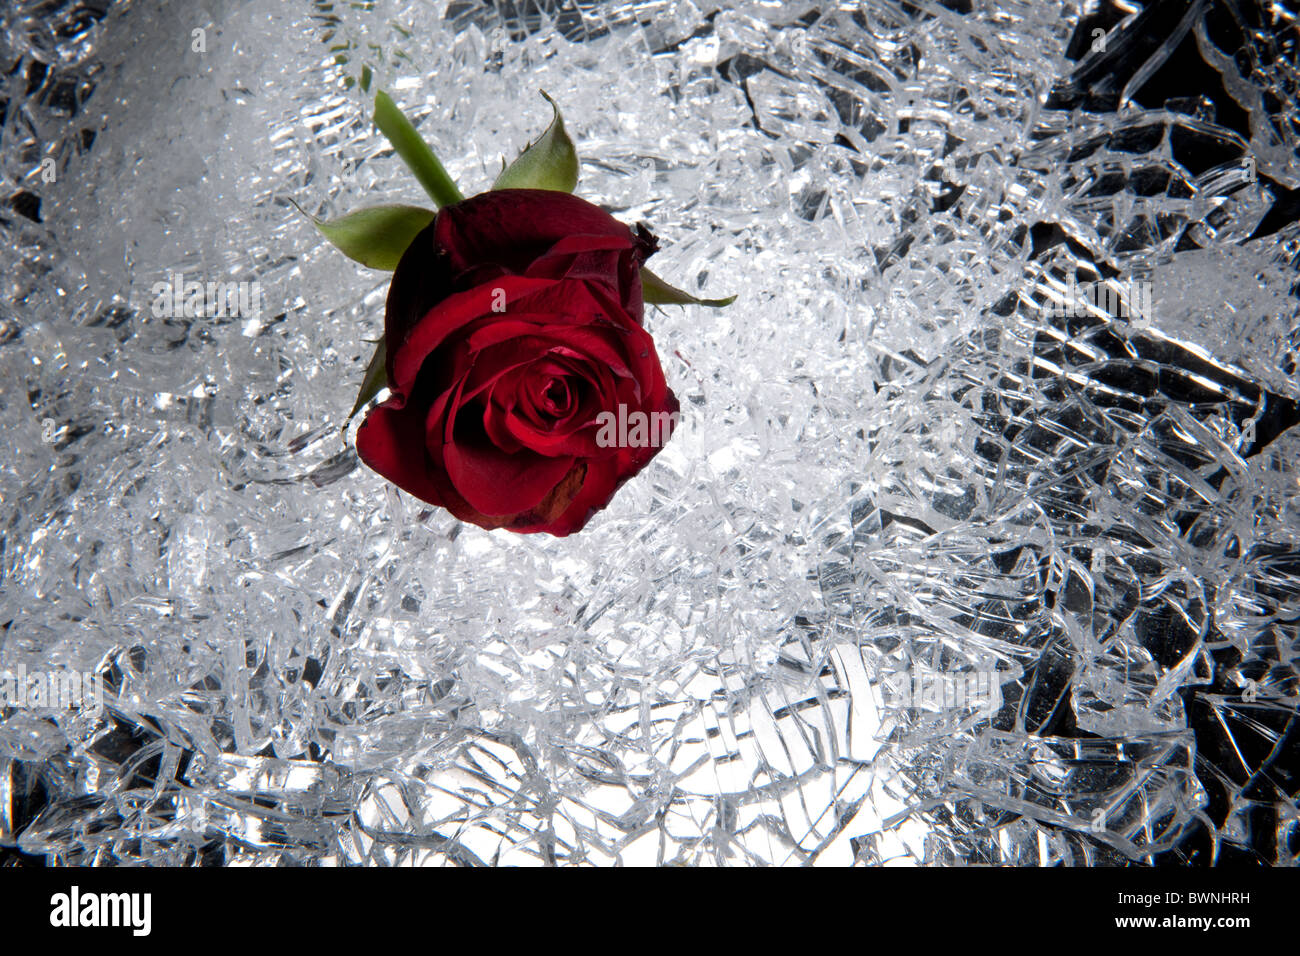 heartsickness  rose with cullet - Stock Image